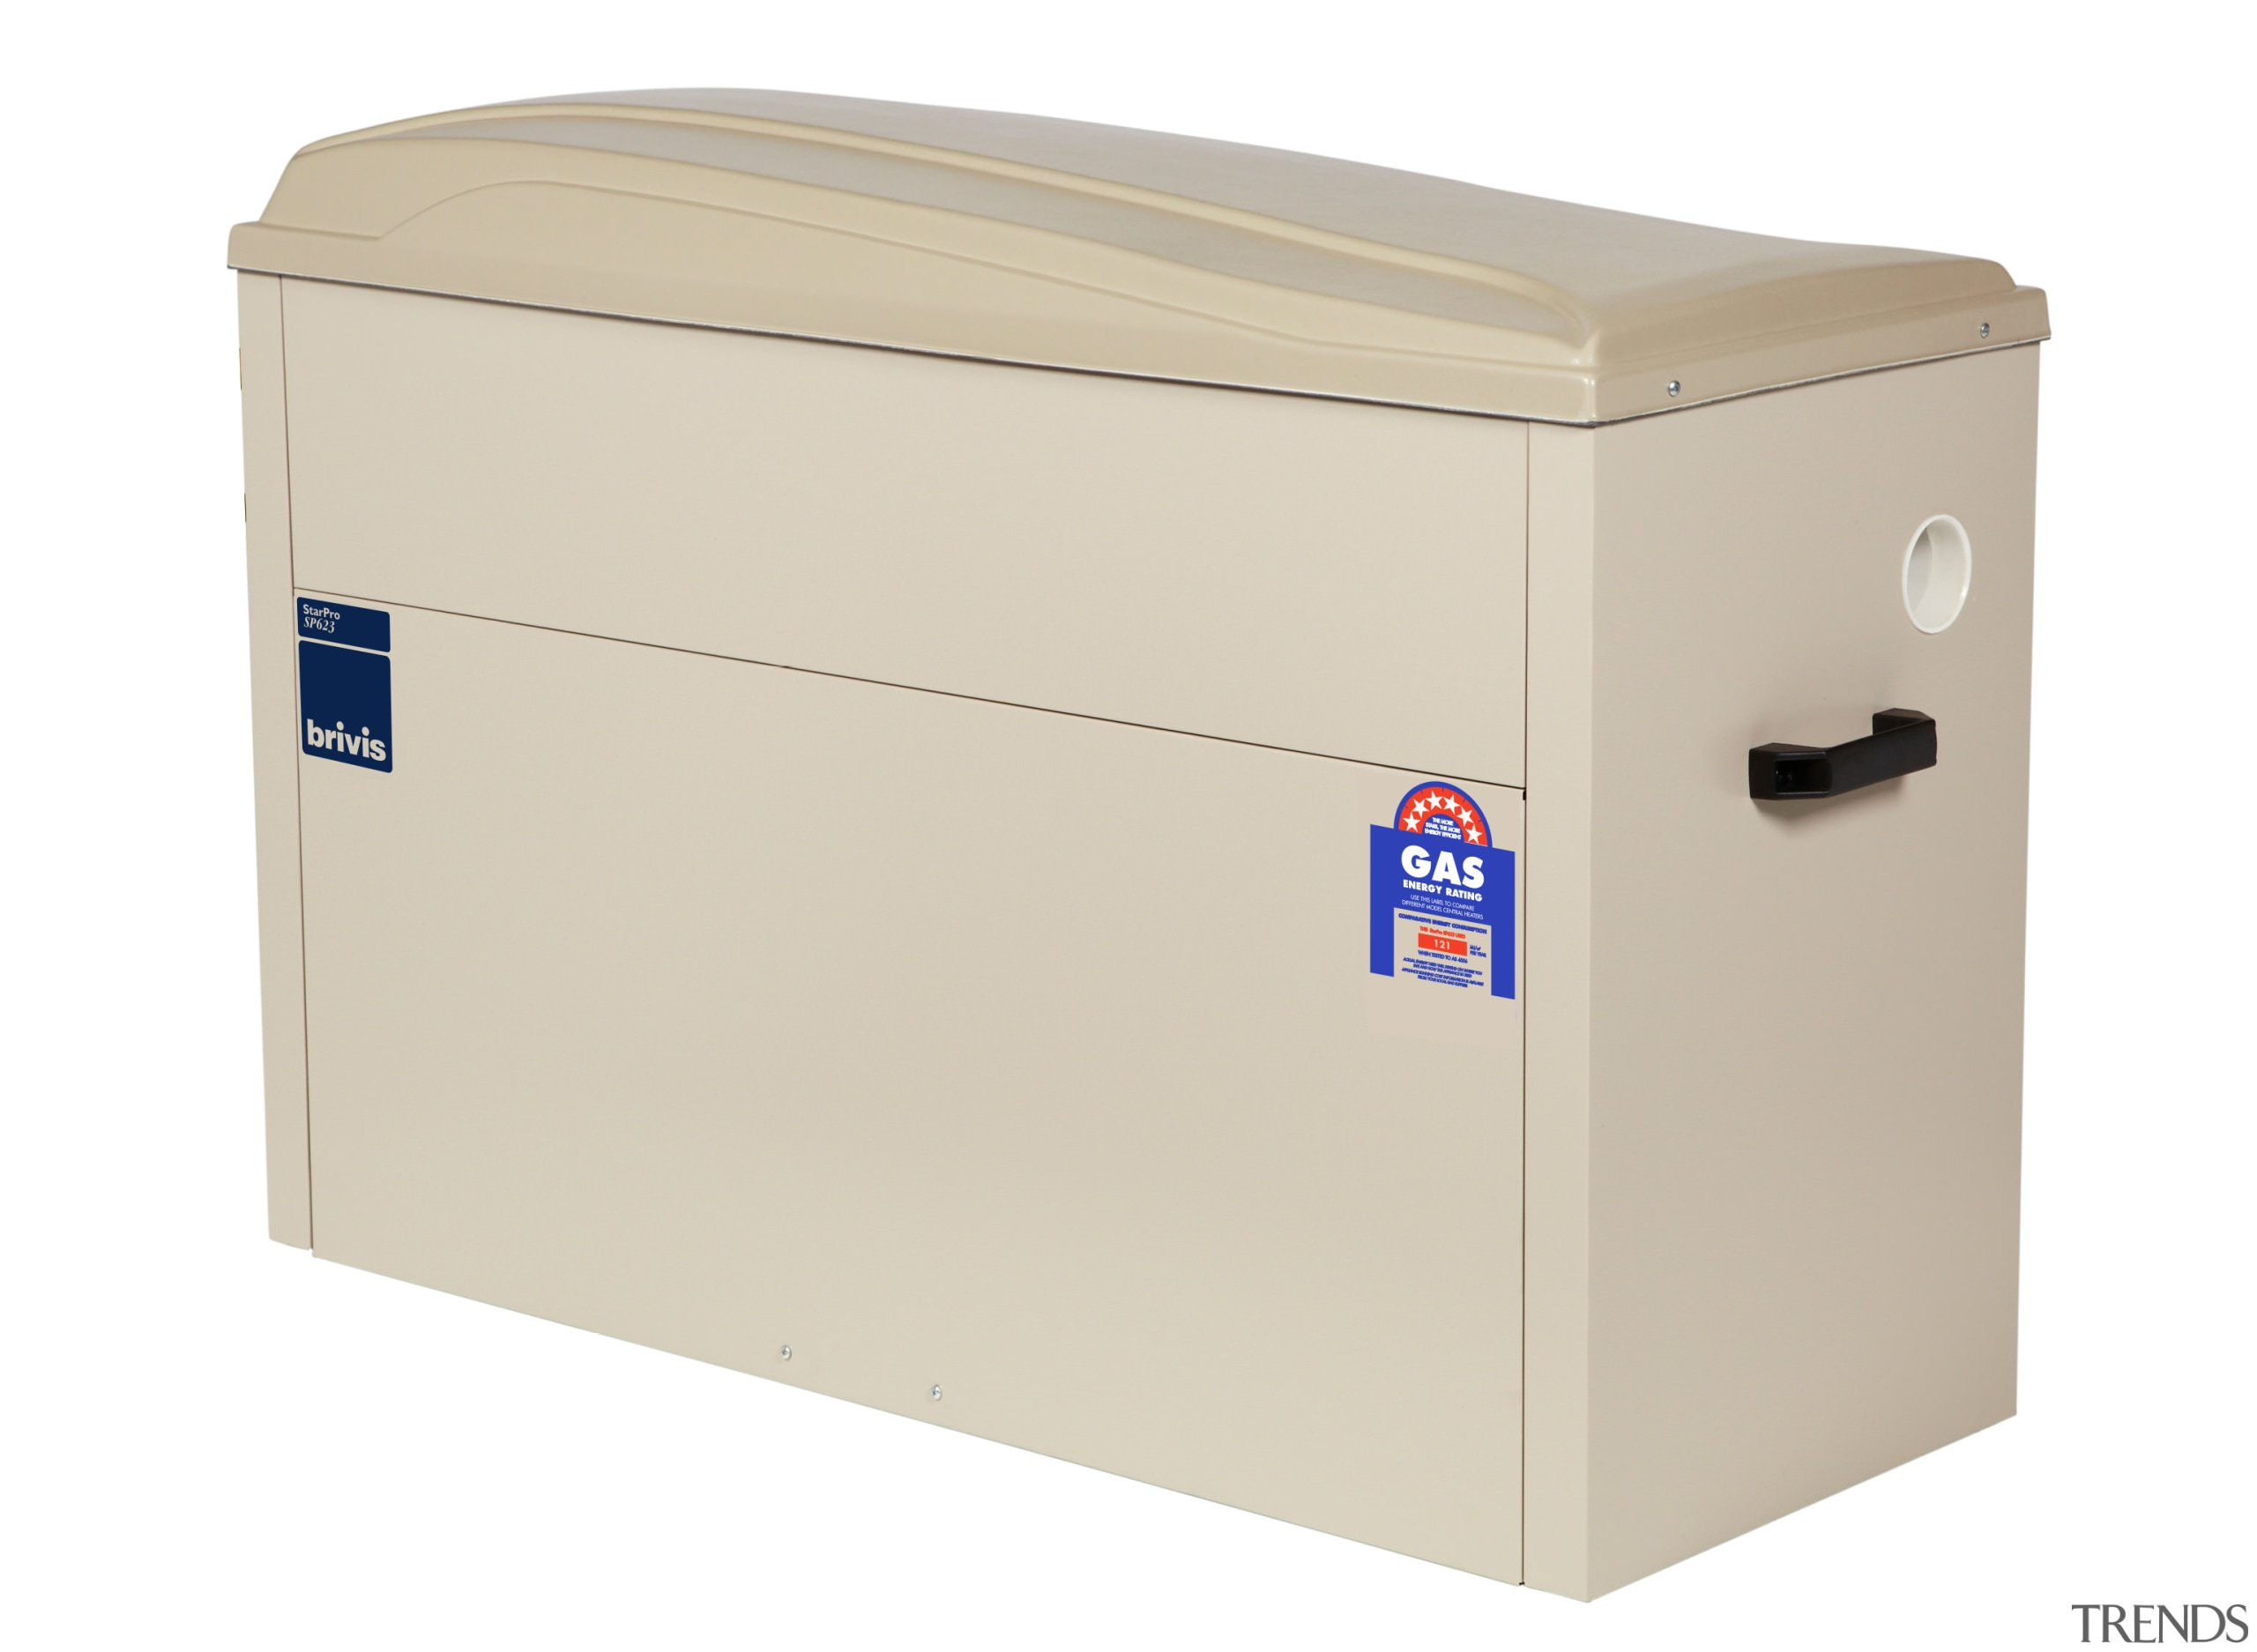 Heater box for gas central heating - Heater product, product design, white